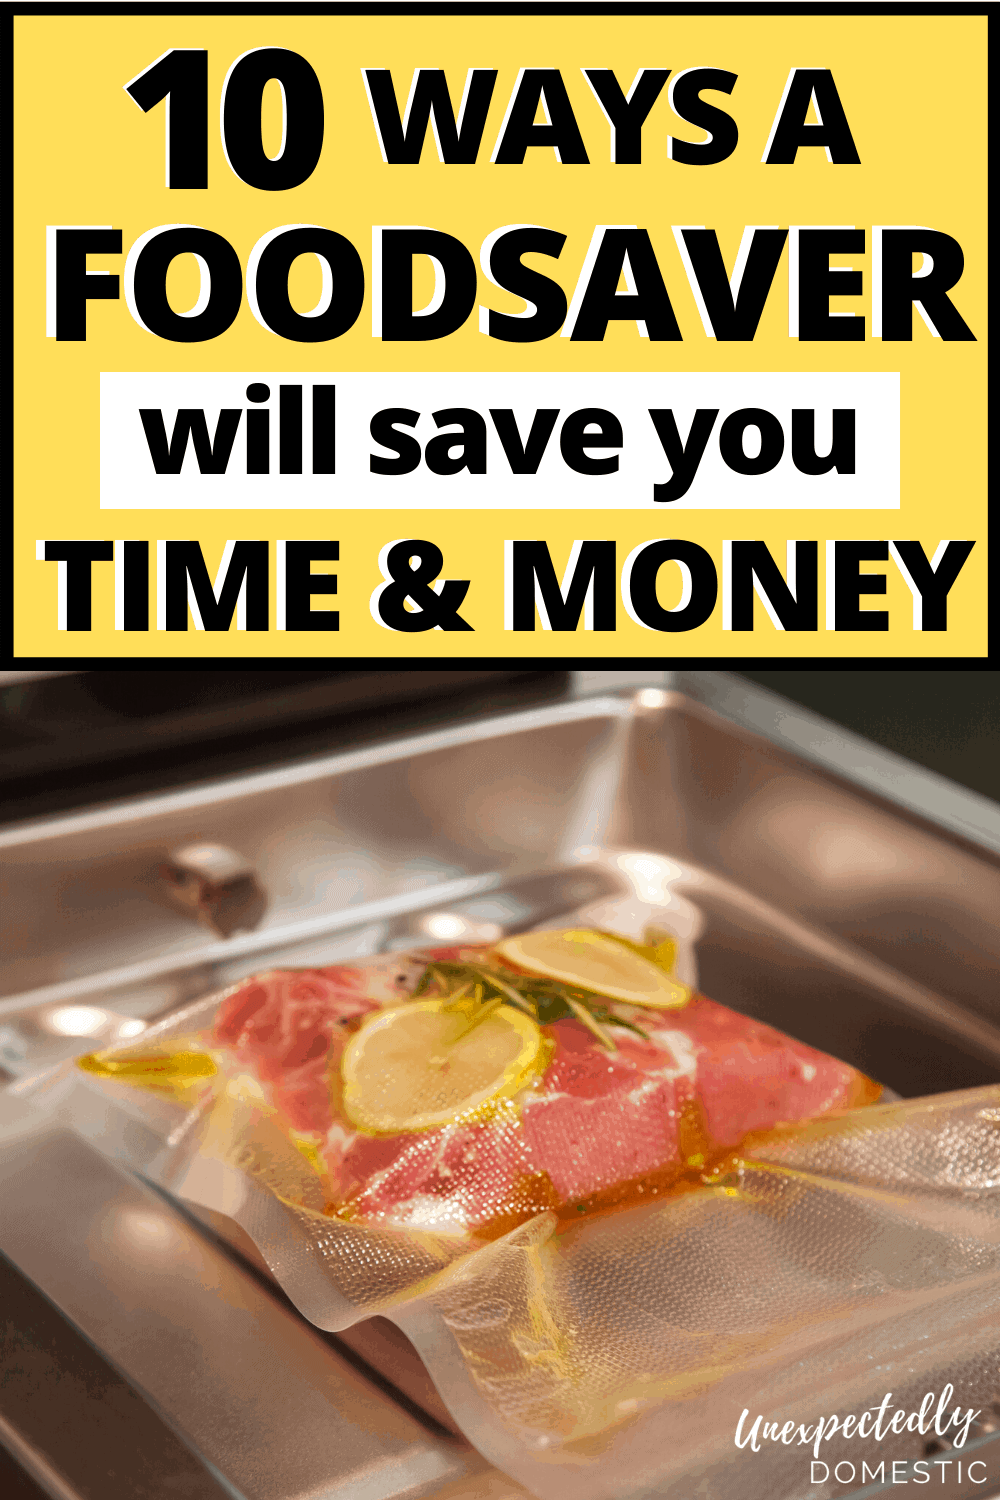 Foodsaver tips and tricks! How to use a Foodsaver vacuum sealer to stretch your grocery budget, and keep everything fresher longer!